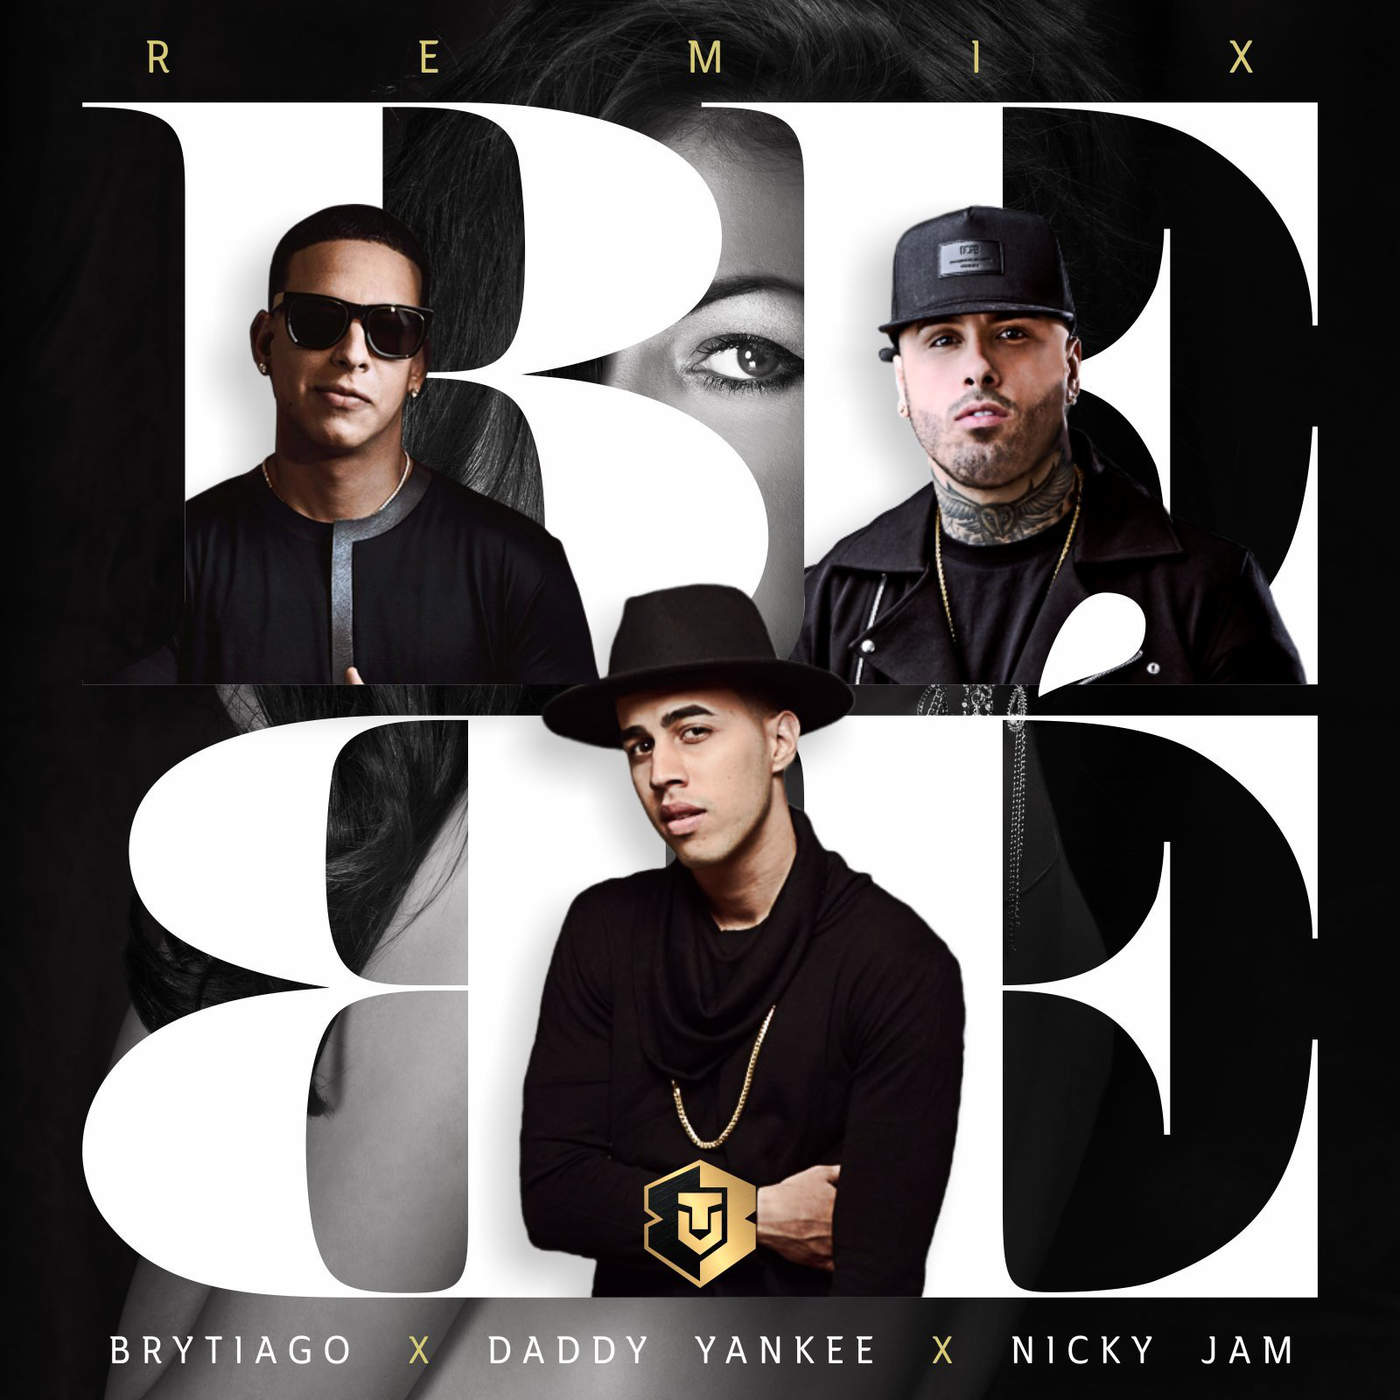 Brytiago, Daddy Yankee & Nicky Jam - Bebé (Remix) - Single